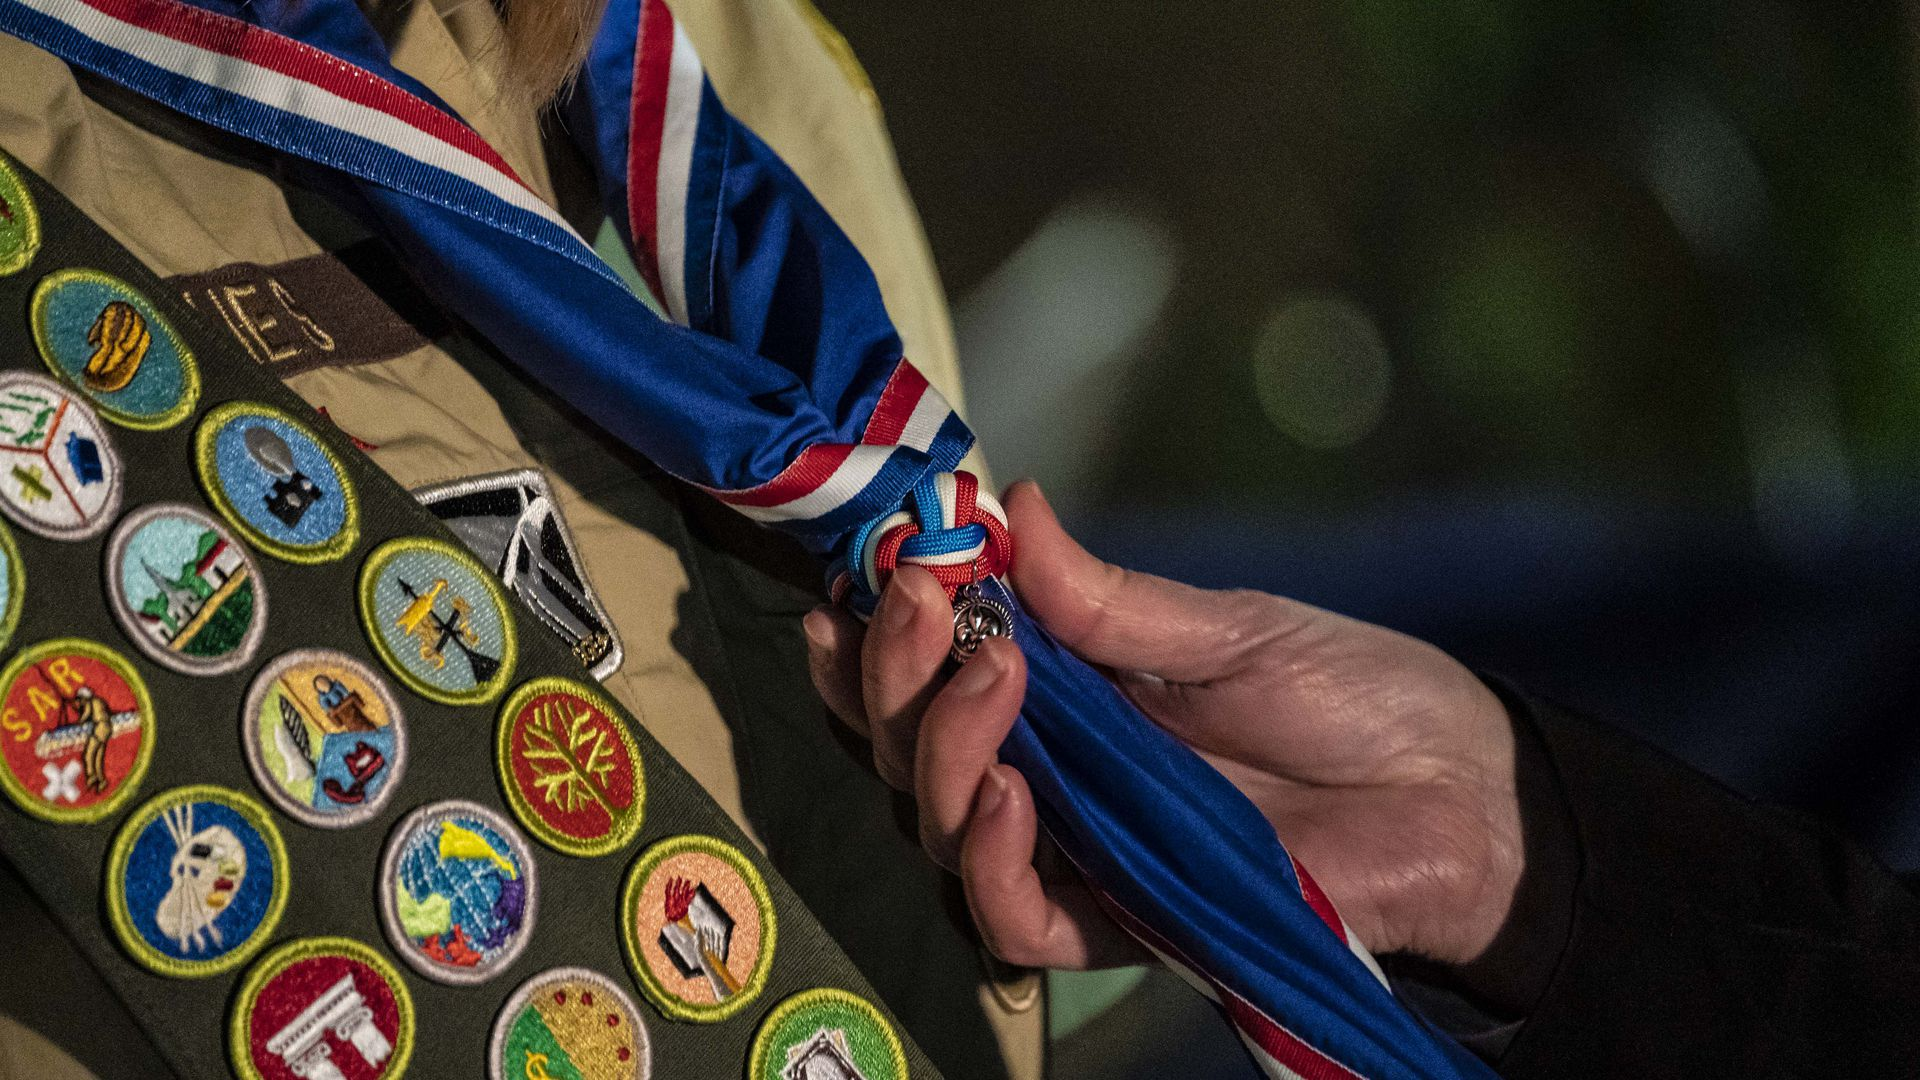 A photo a scout receiving a blue Eagle Scout neckerchief during a ceremony.